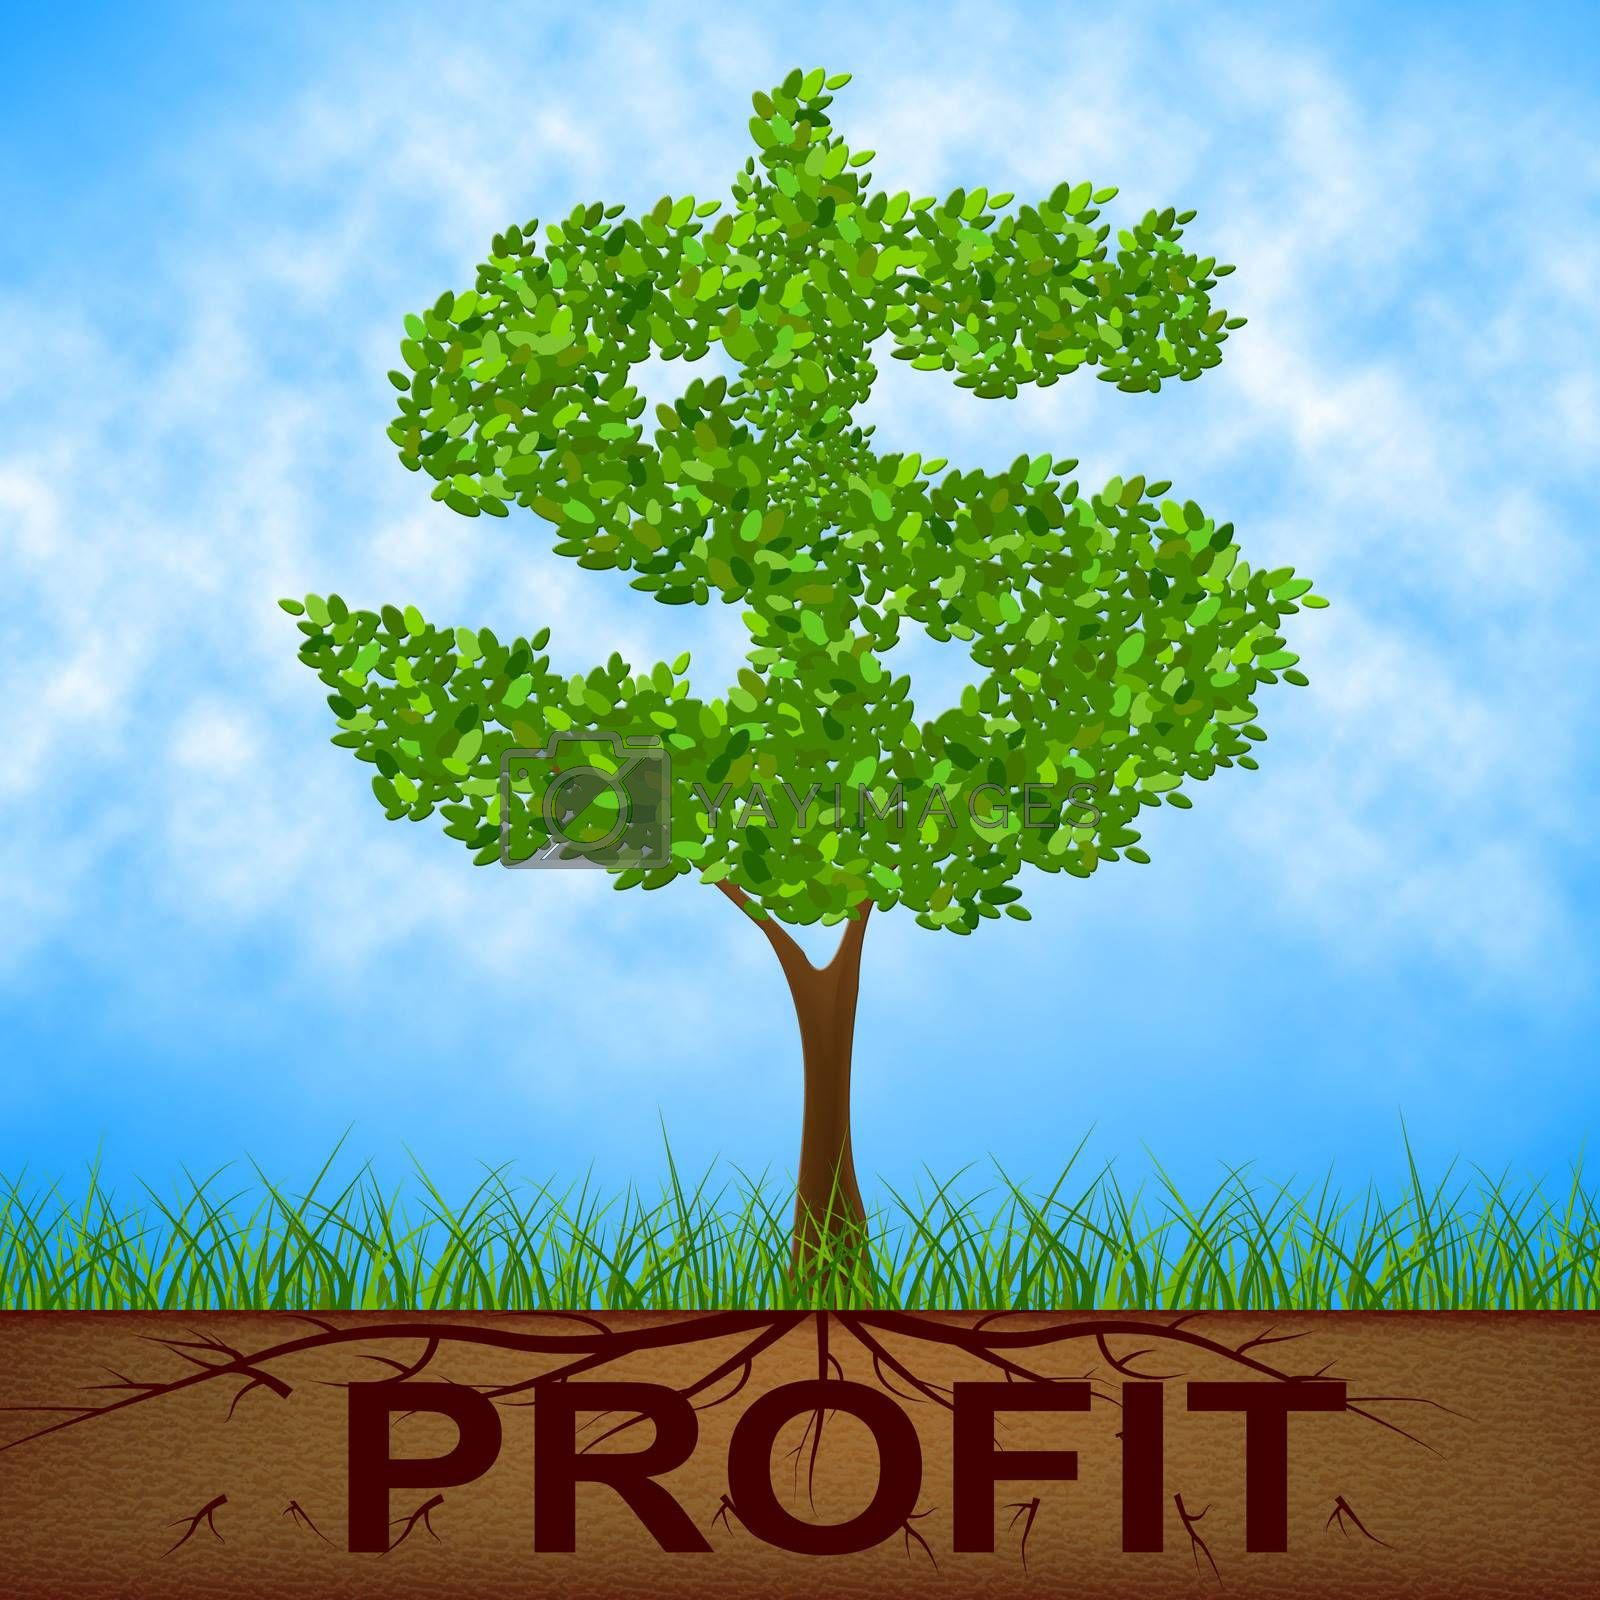 Profit Tree Shows United States And Banking by stuartmiles